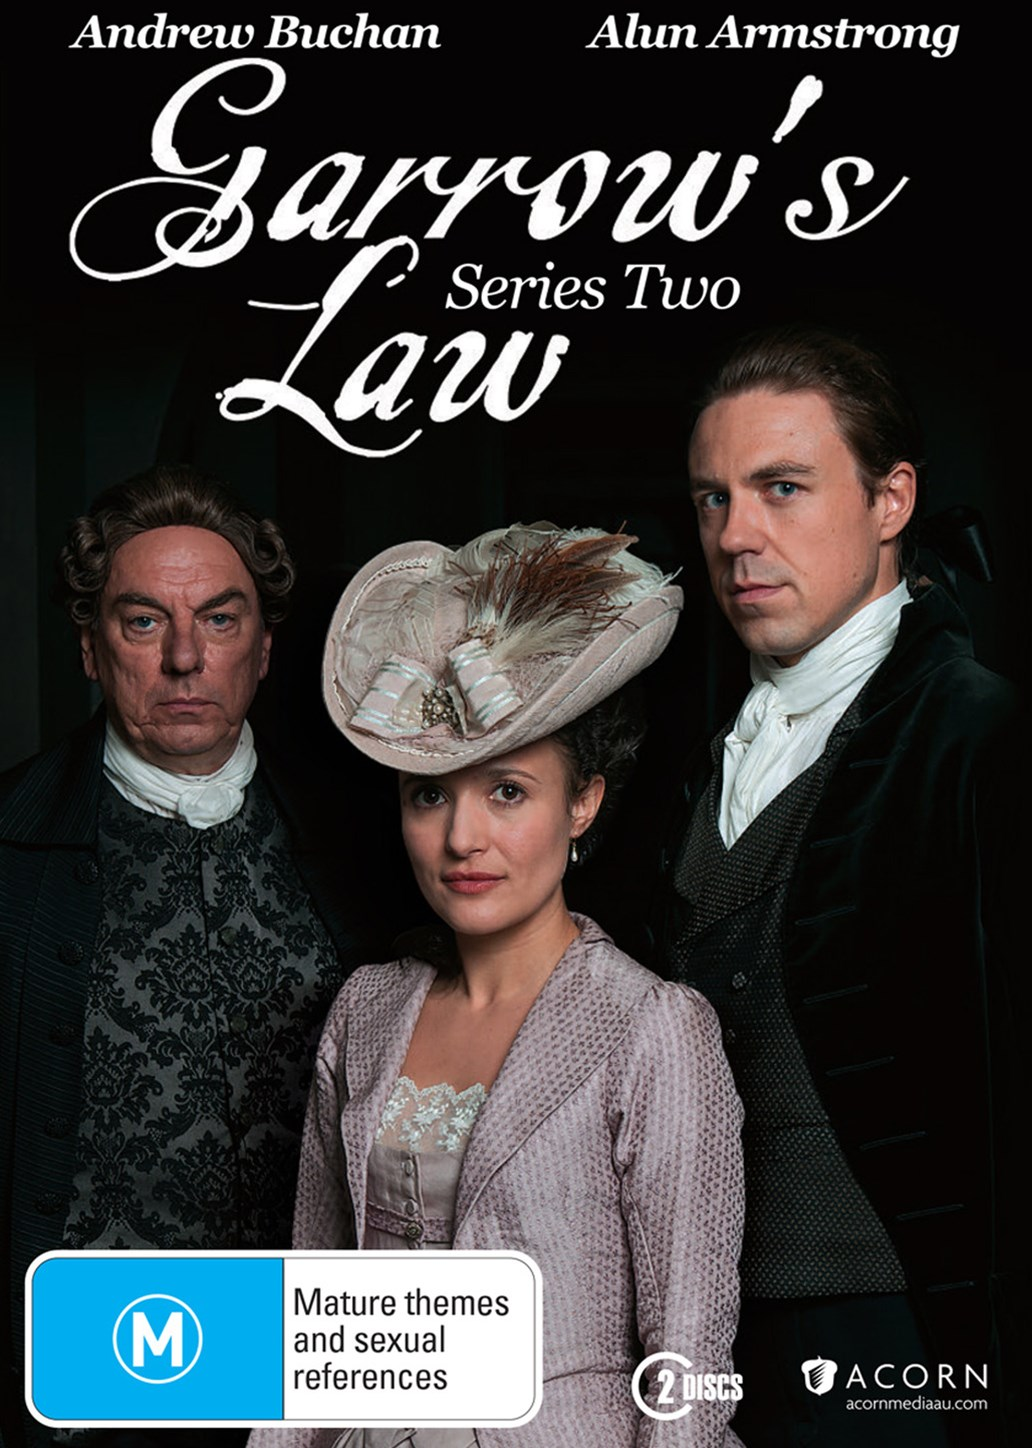 Garrow's Law Series 2